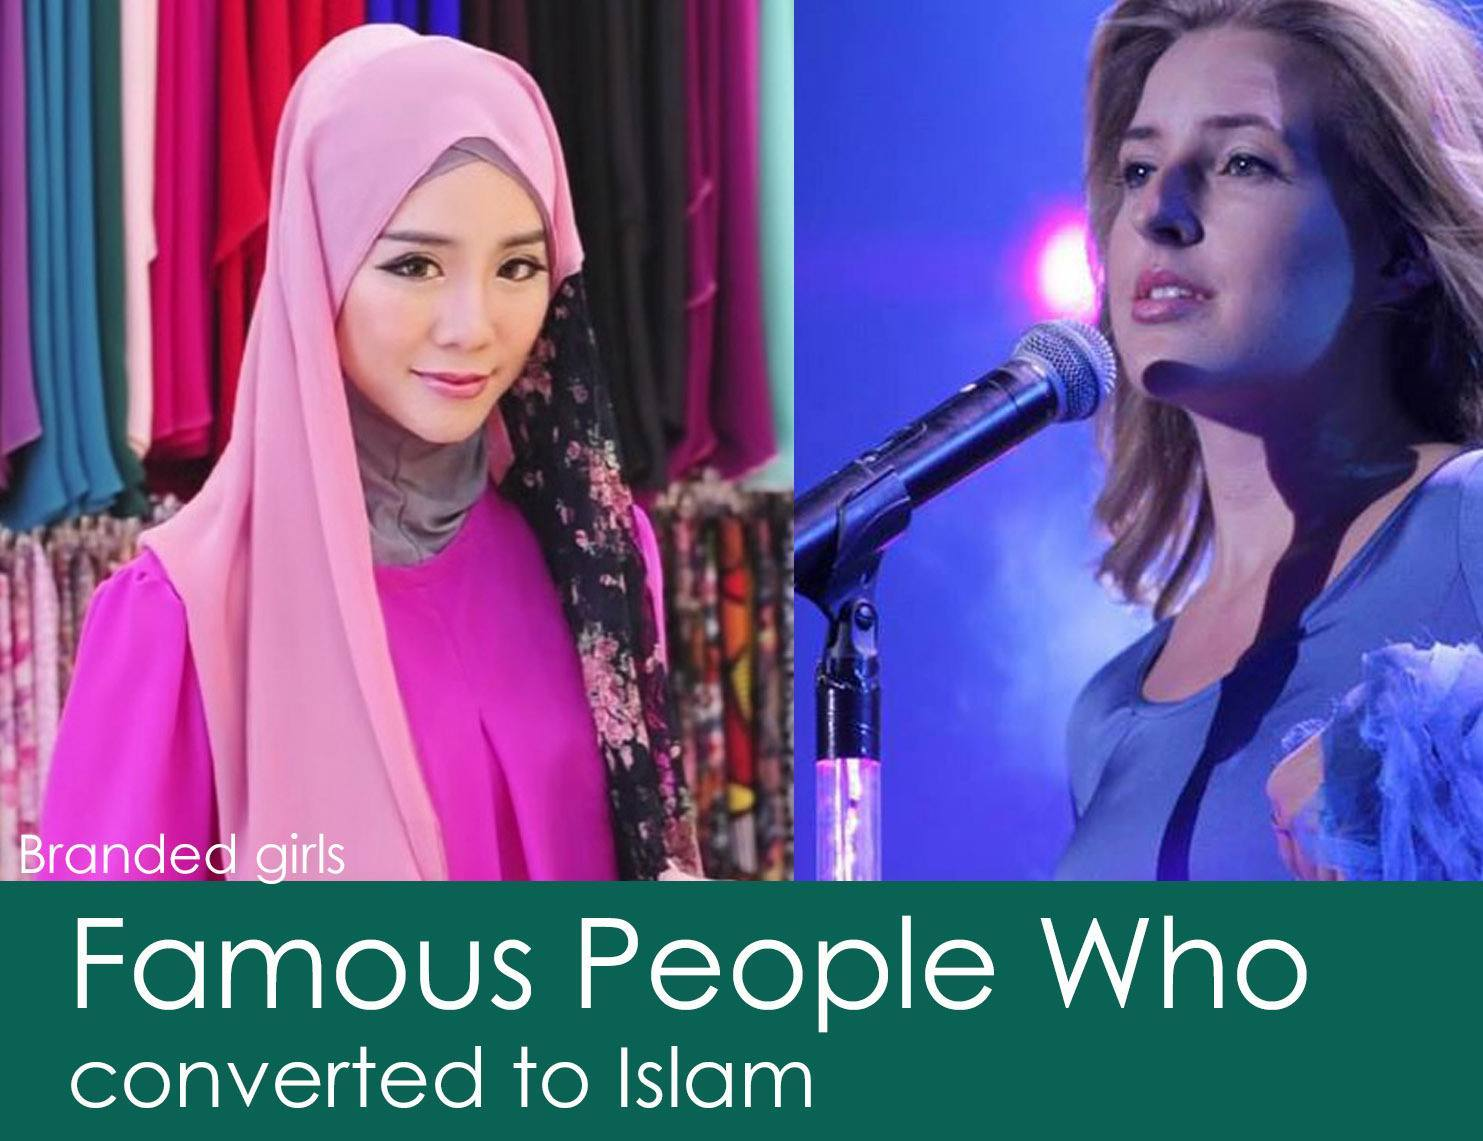 polyvore-sample-2 English Muslim Converts-30 Famous People Who Converted To Islam